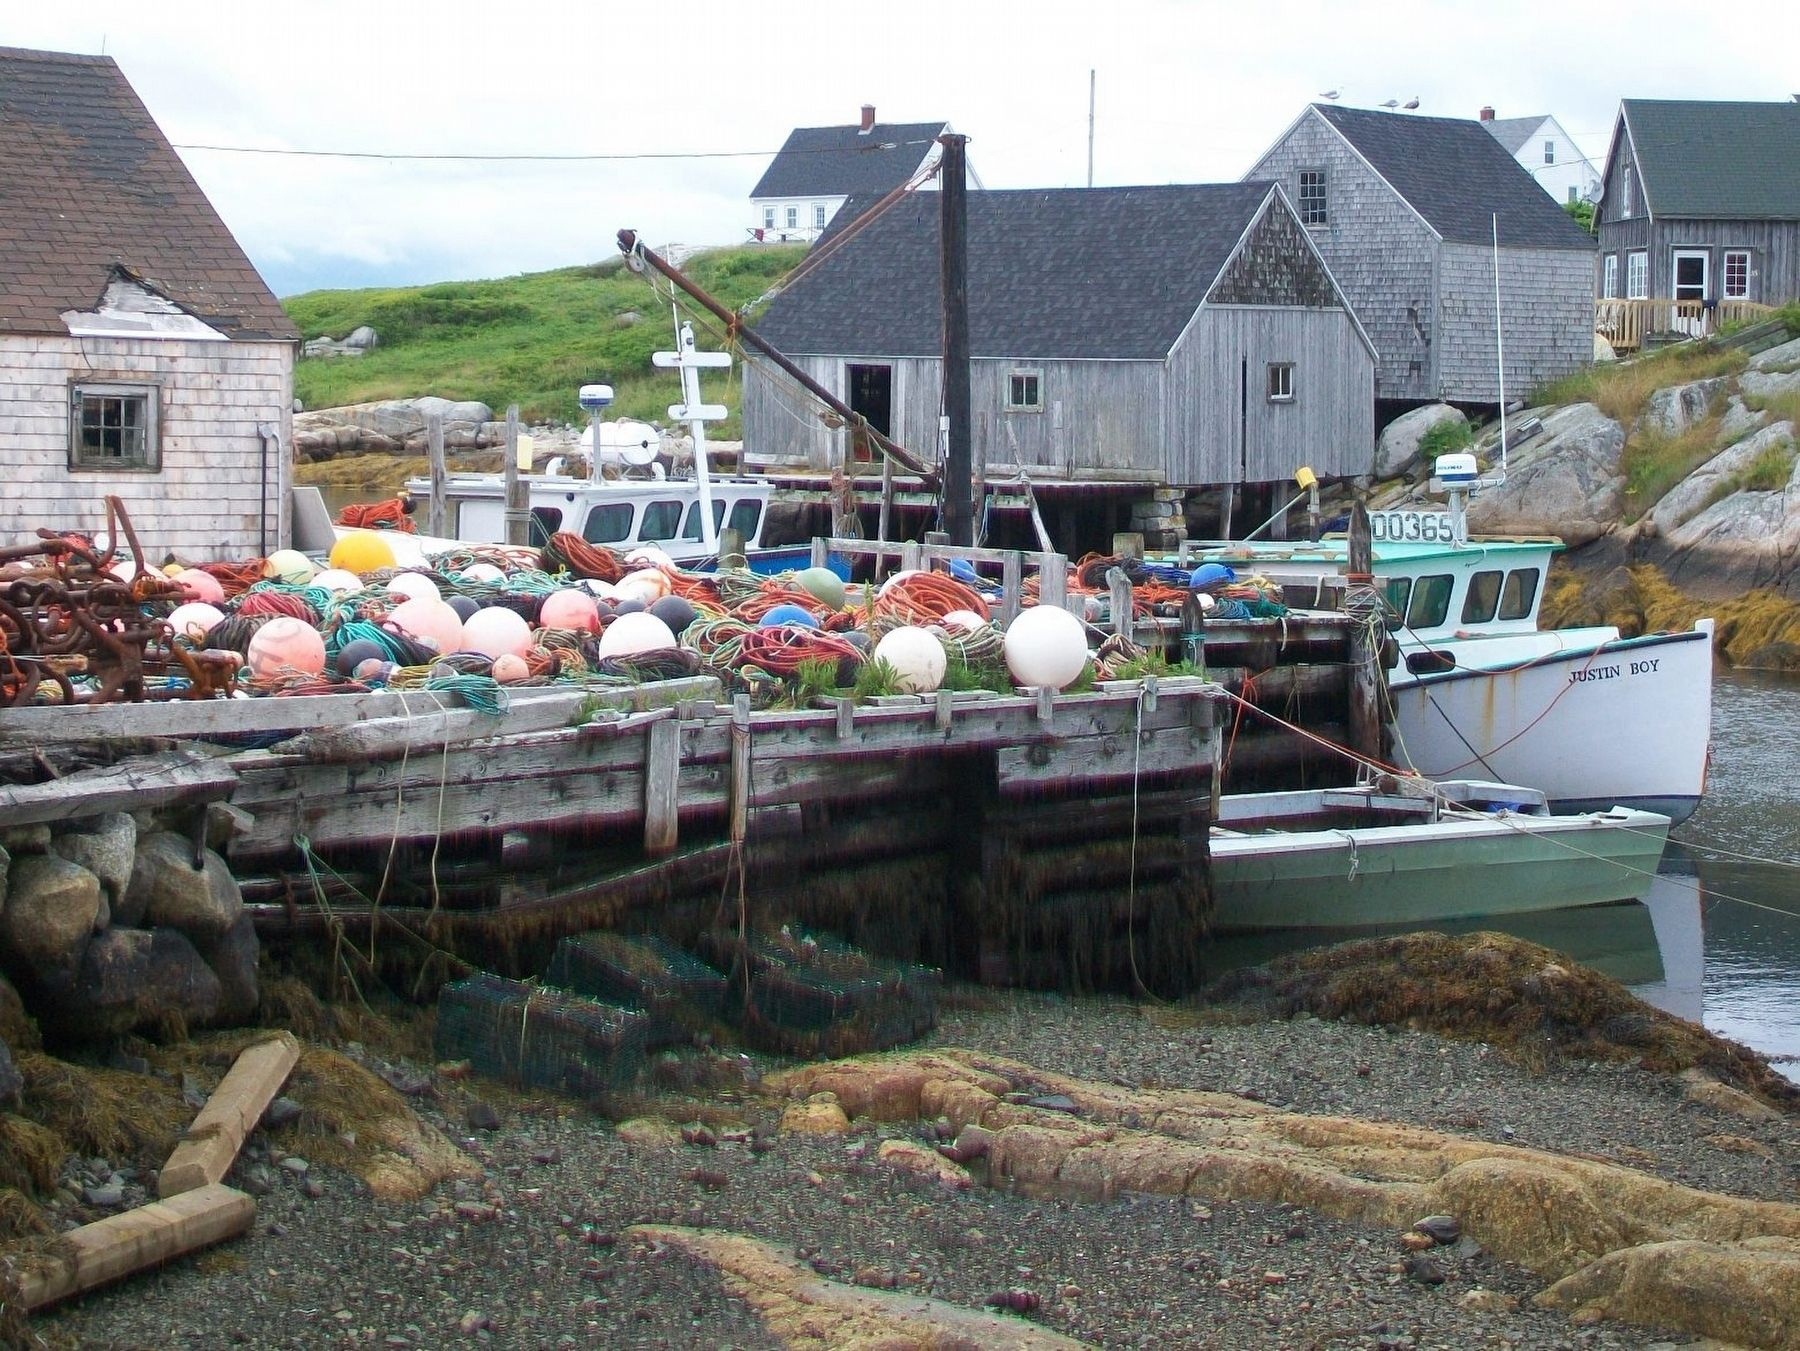 Peggy's Cove Fishing Boats and Sheds image. Click for full size.